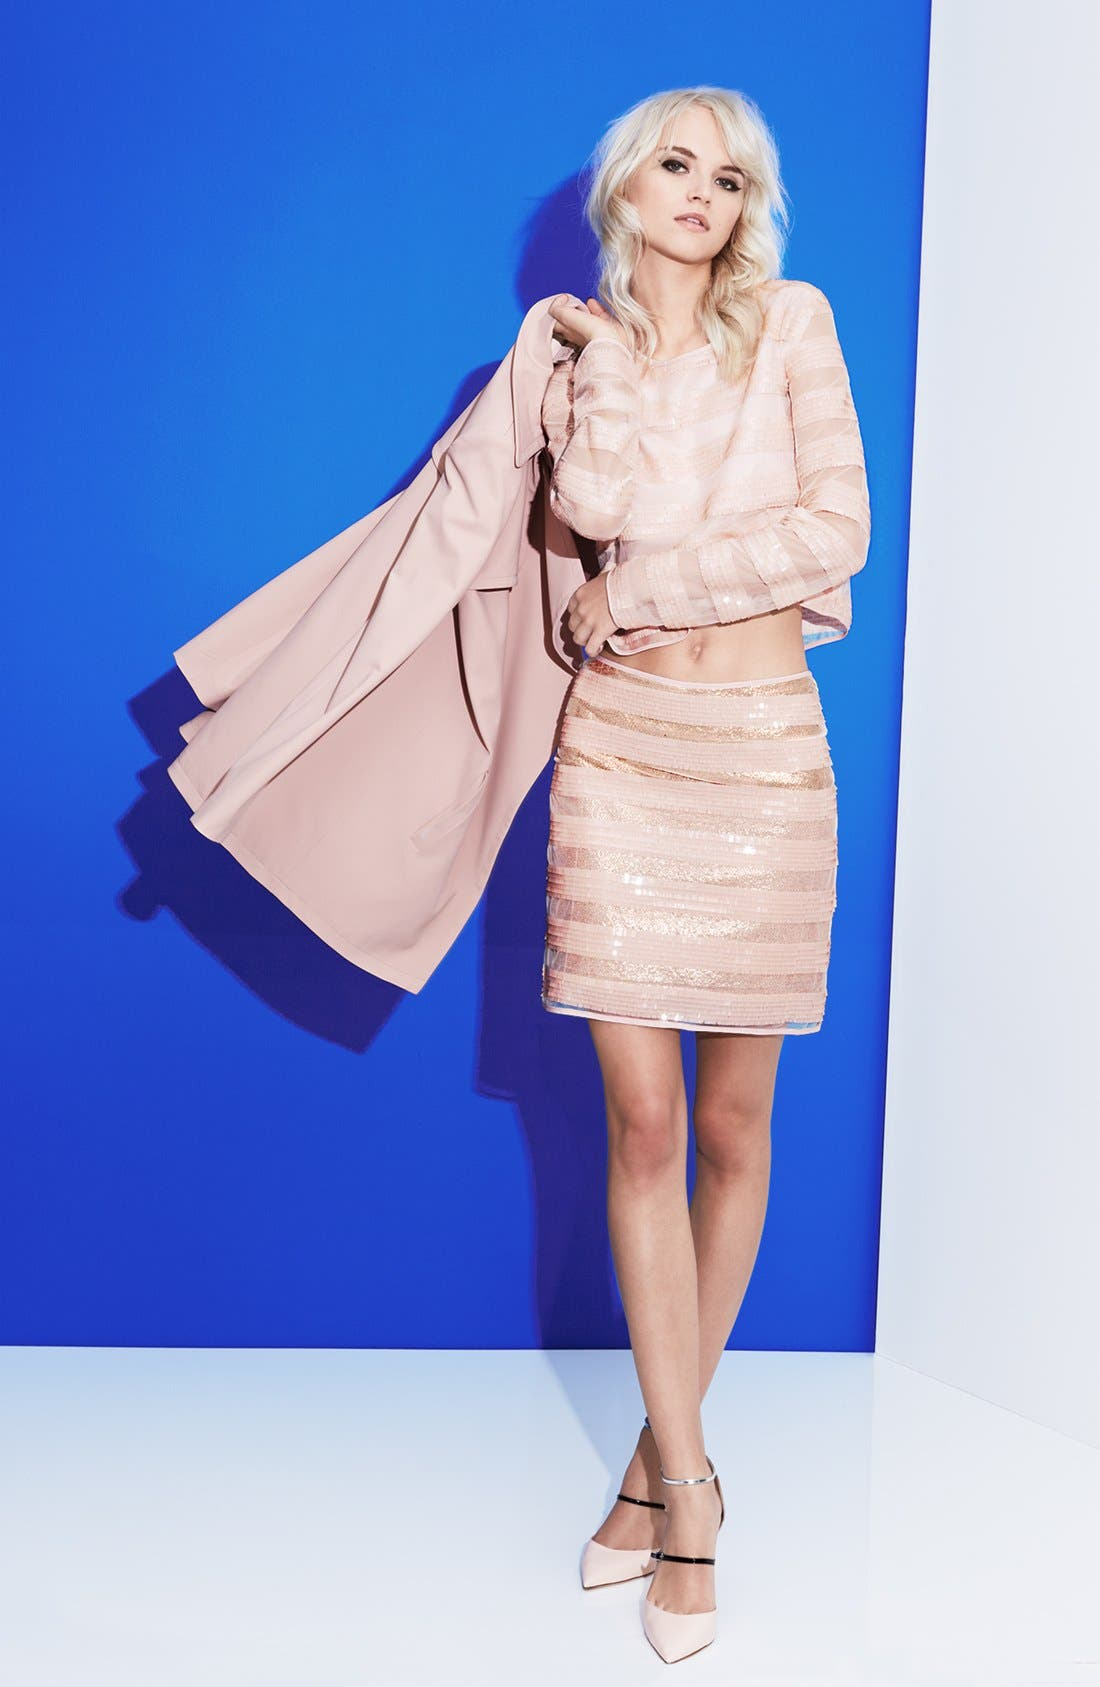 Alternate Image 1 Selected - Mural Trench Coat, MINKPINK Top & Skirt